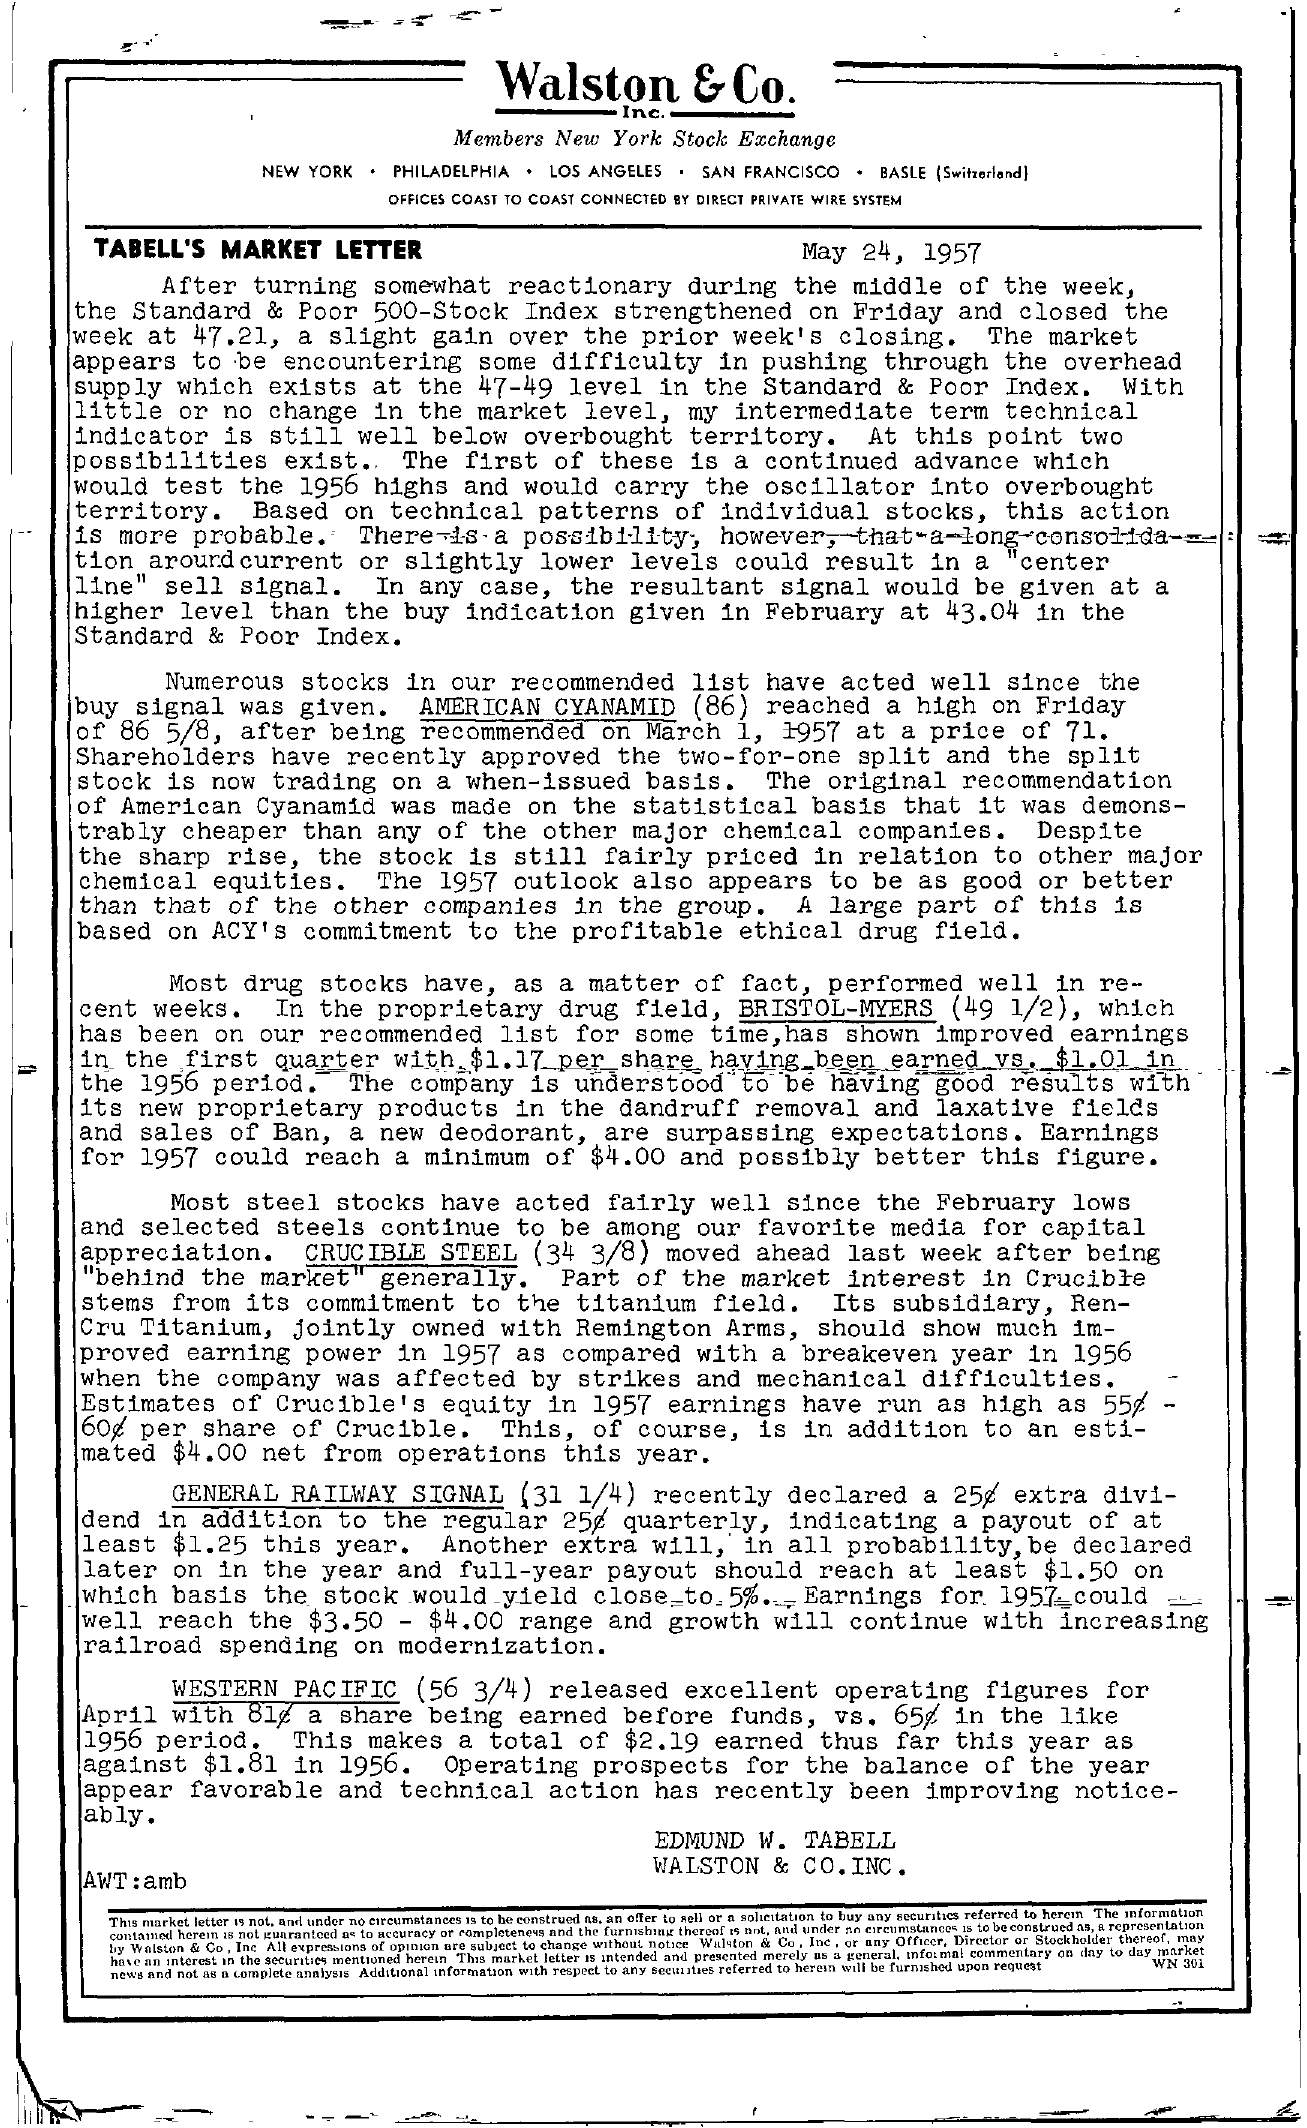 Tabell's Market Letter - May 24, 1957